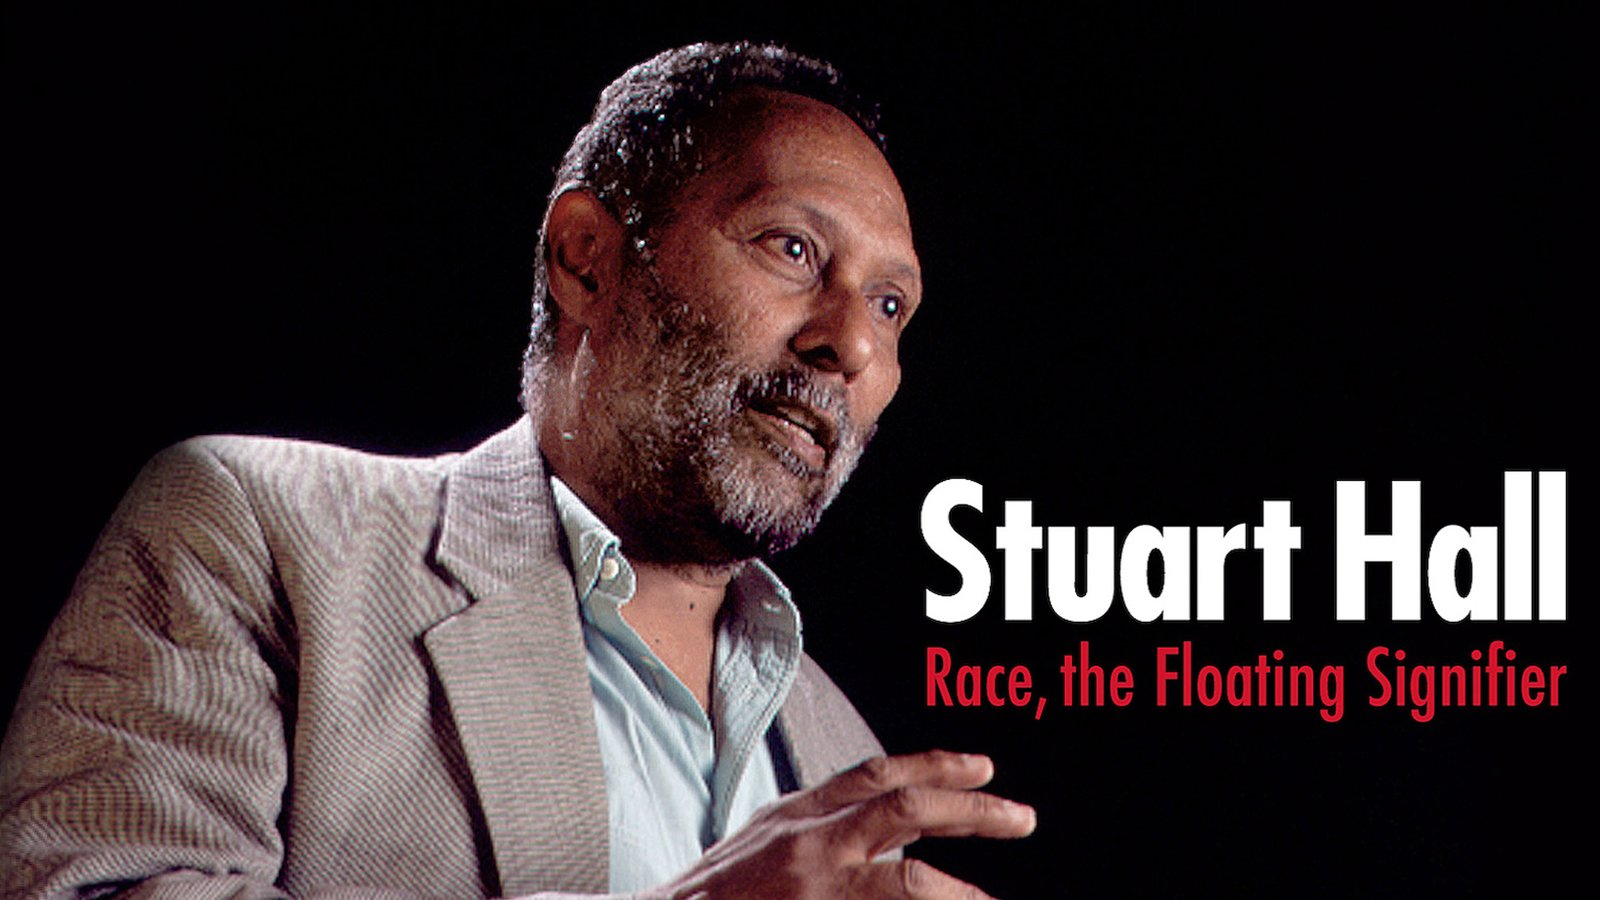 Stuart Hall: Race - the Floating Signifier